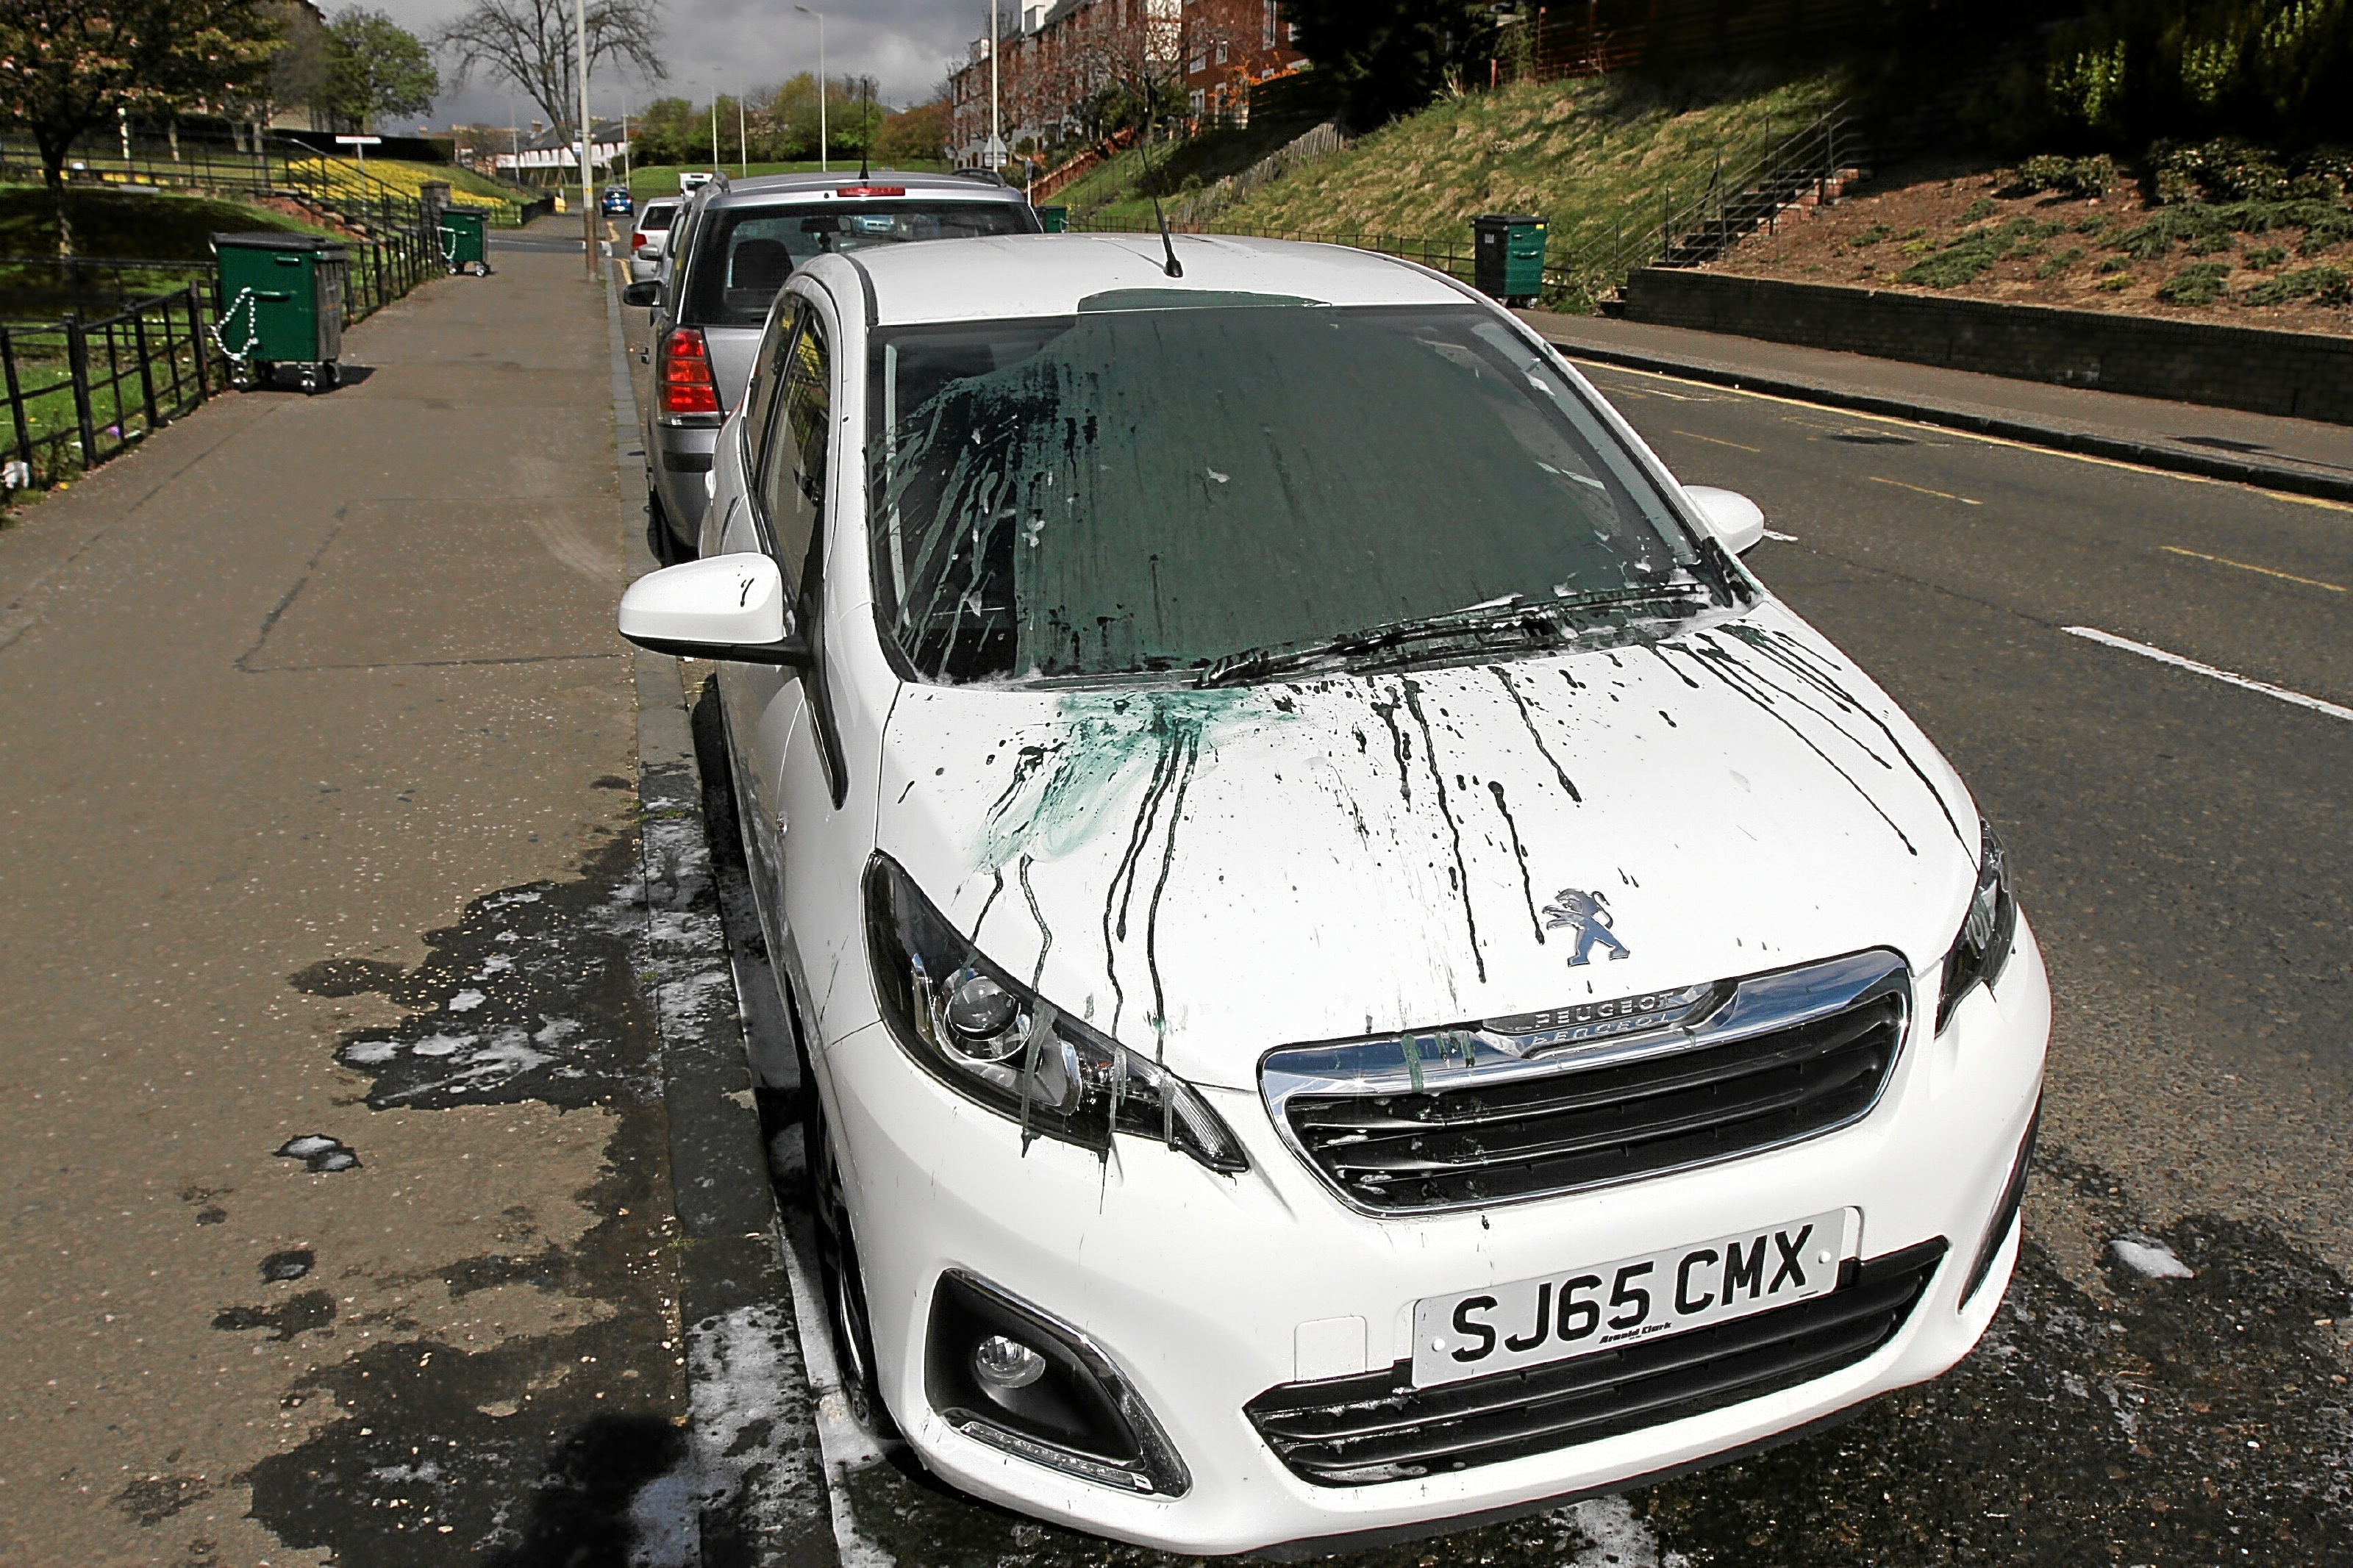 The woman's Peugeot which was targeted by a vandal. Green paint was thrown over the front and roof of the car.